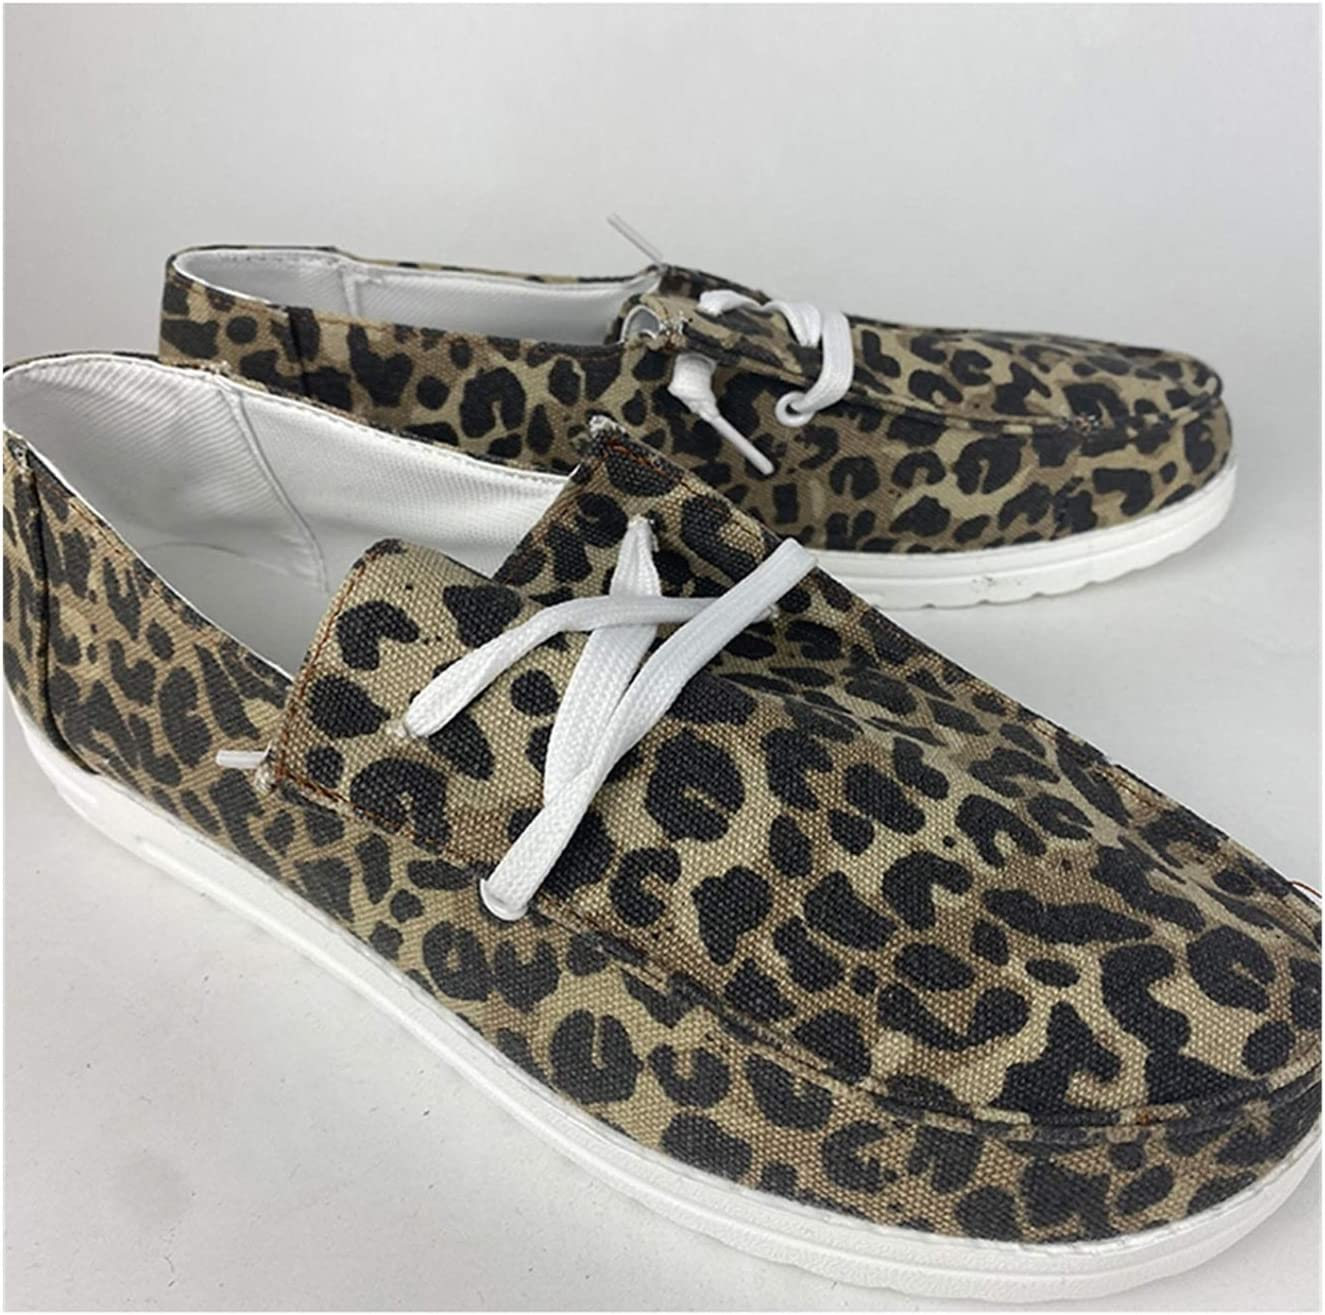 PYBH Ranking TOP20 2021 Men Sneakers Canvas Cas Long-awaited Solid Shoes Leopard Breathable